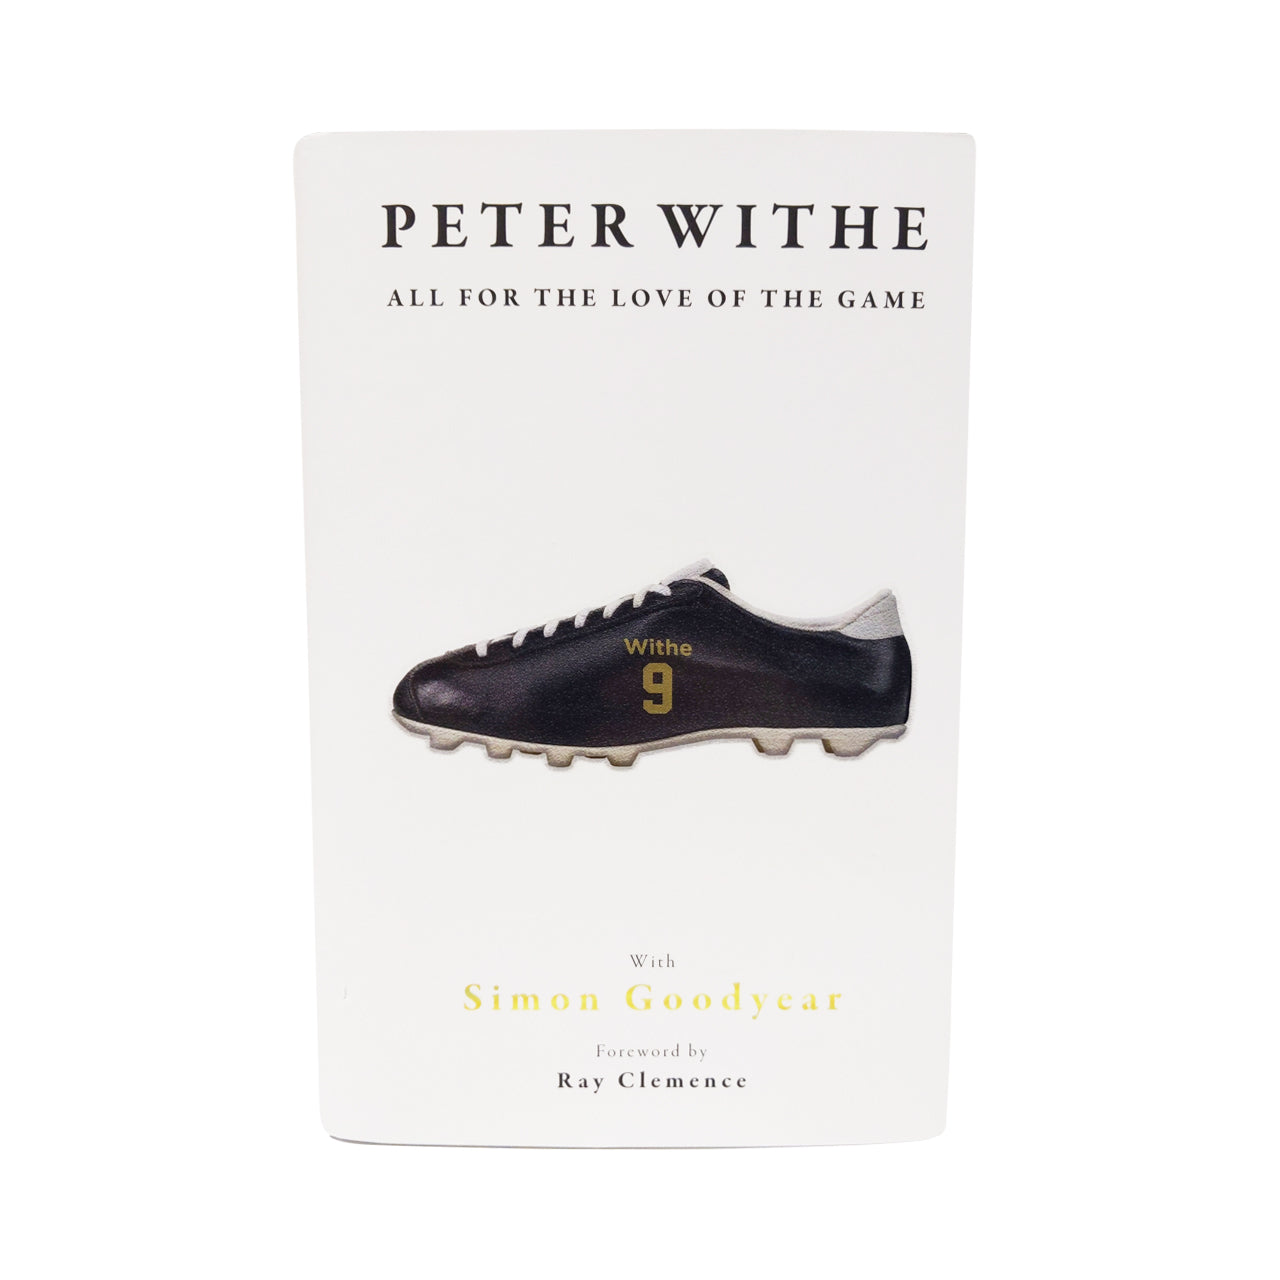 Peter Withe: All For the Love of the Game - Hardback